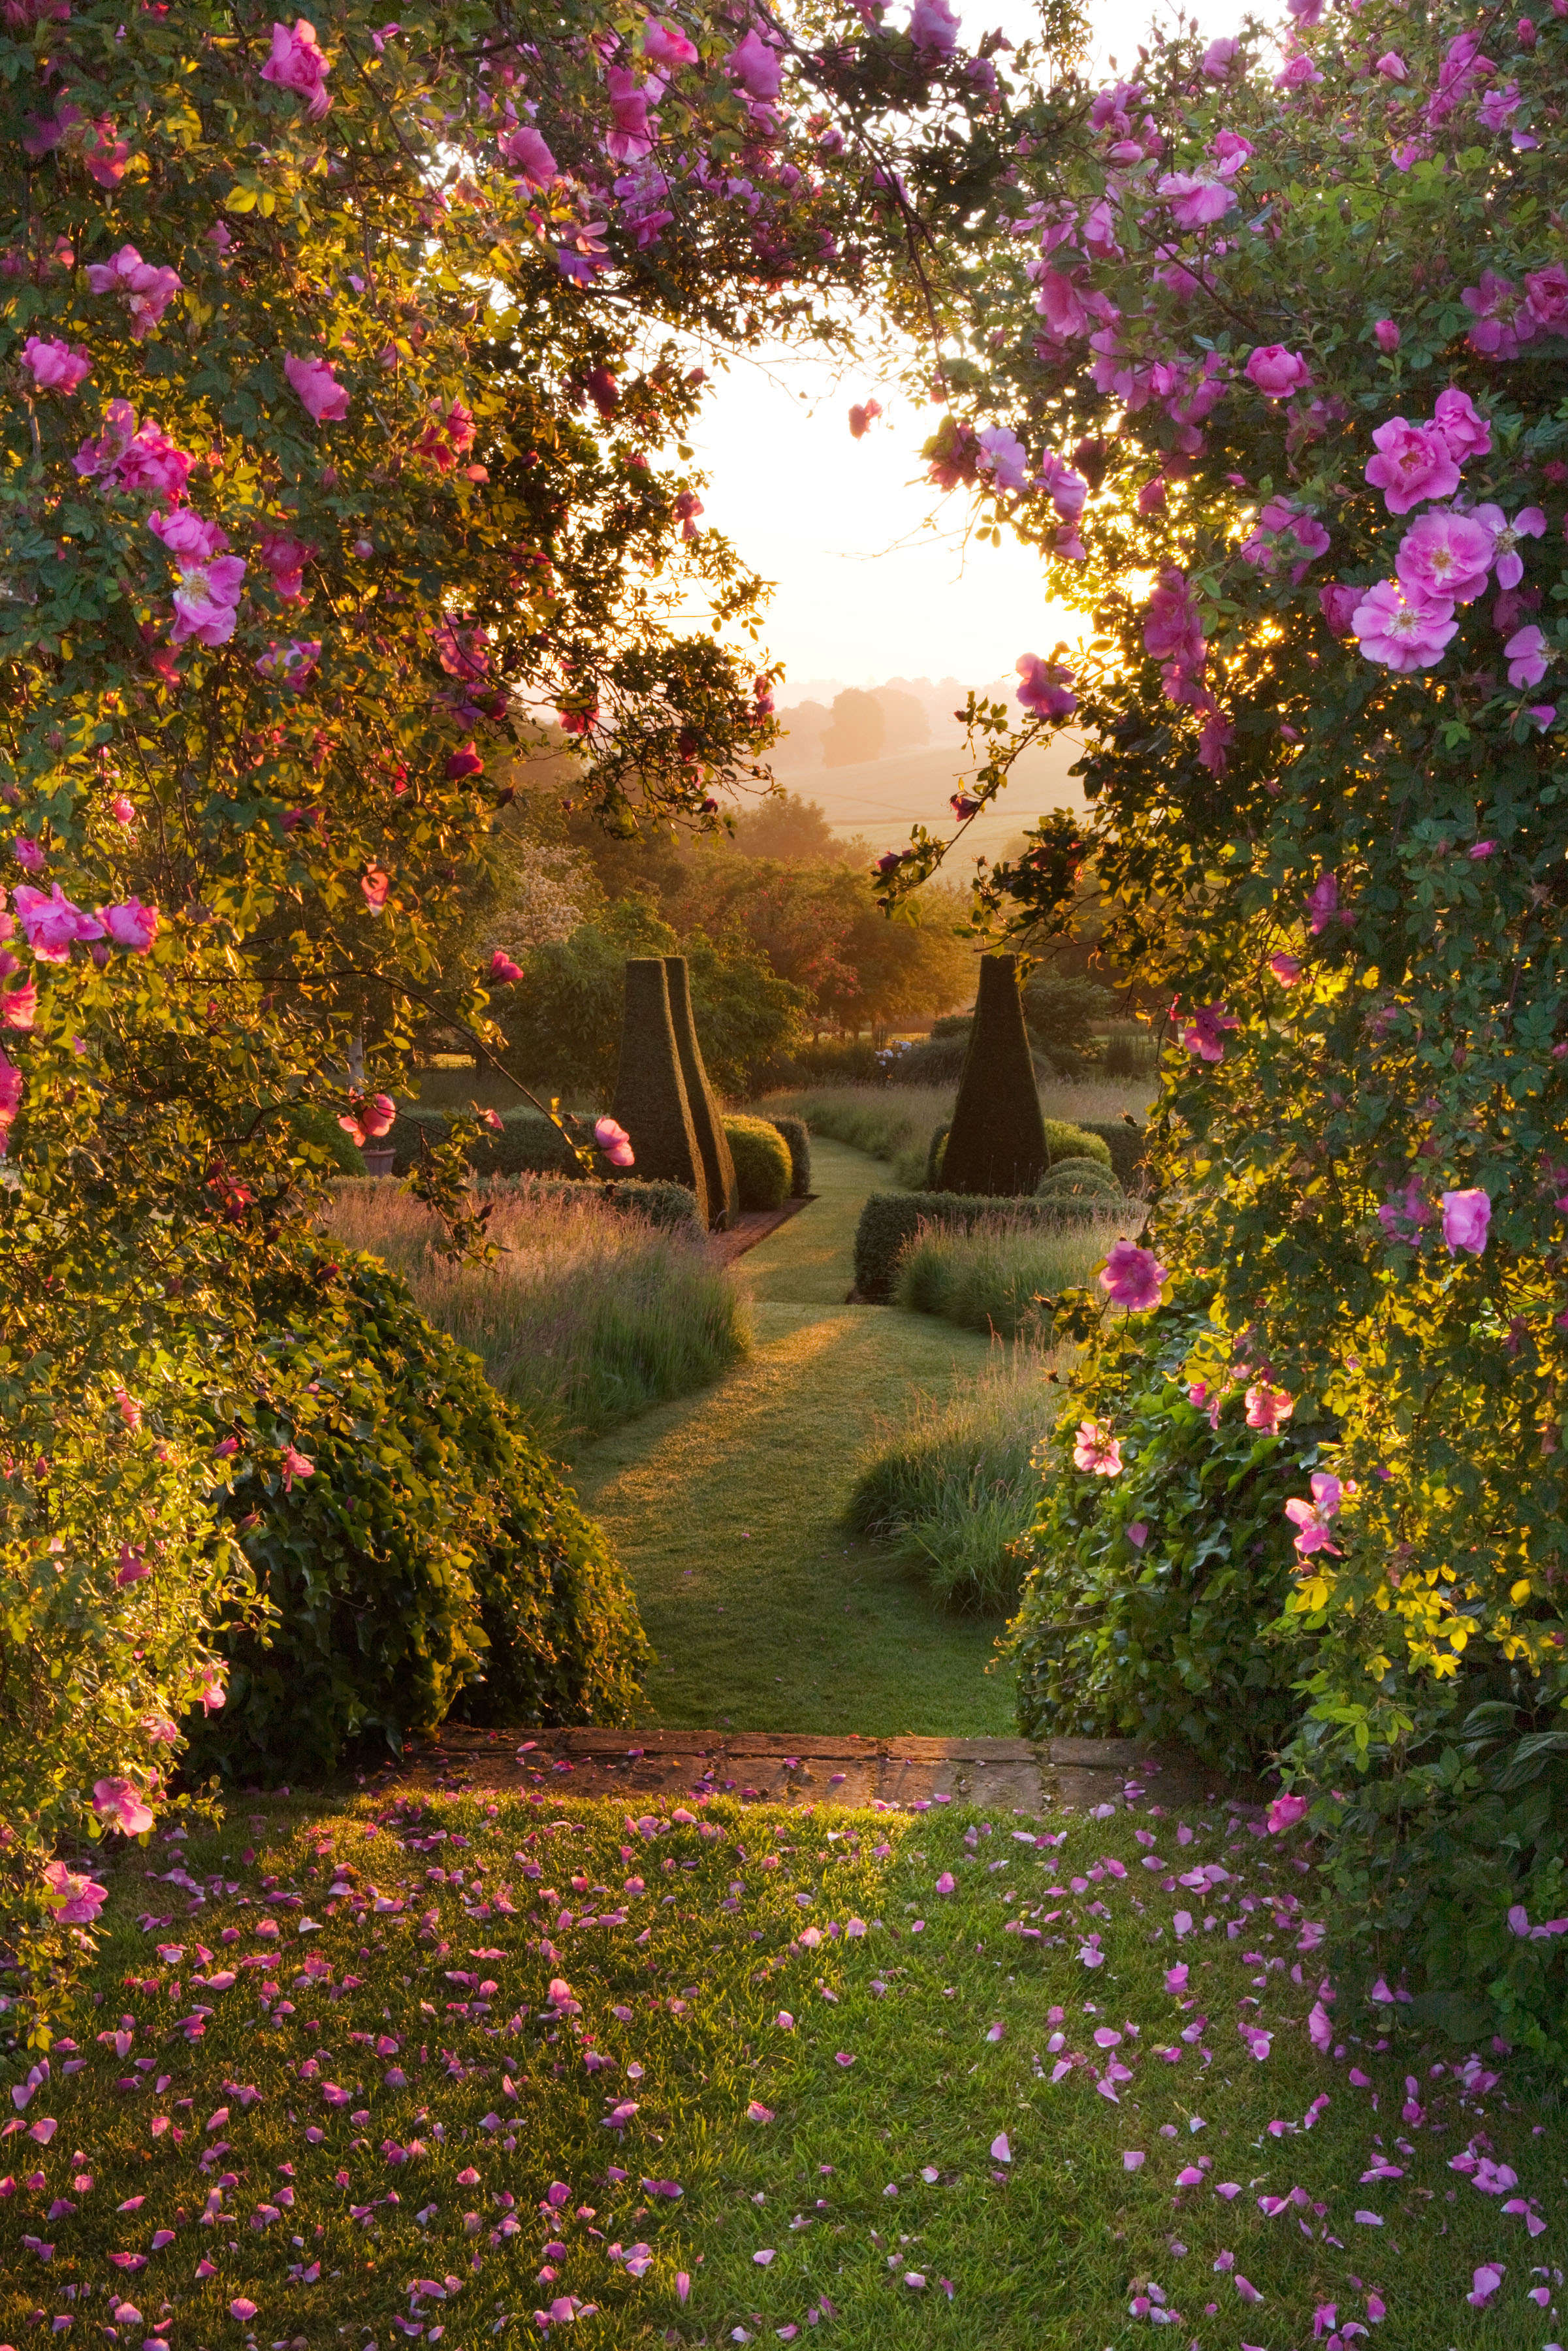 Expert Advice: 9 Tips to Take Better Pictures from Garden ...